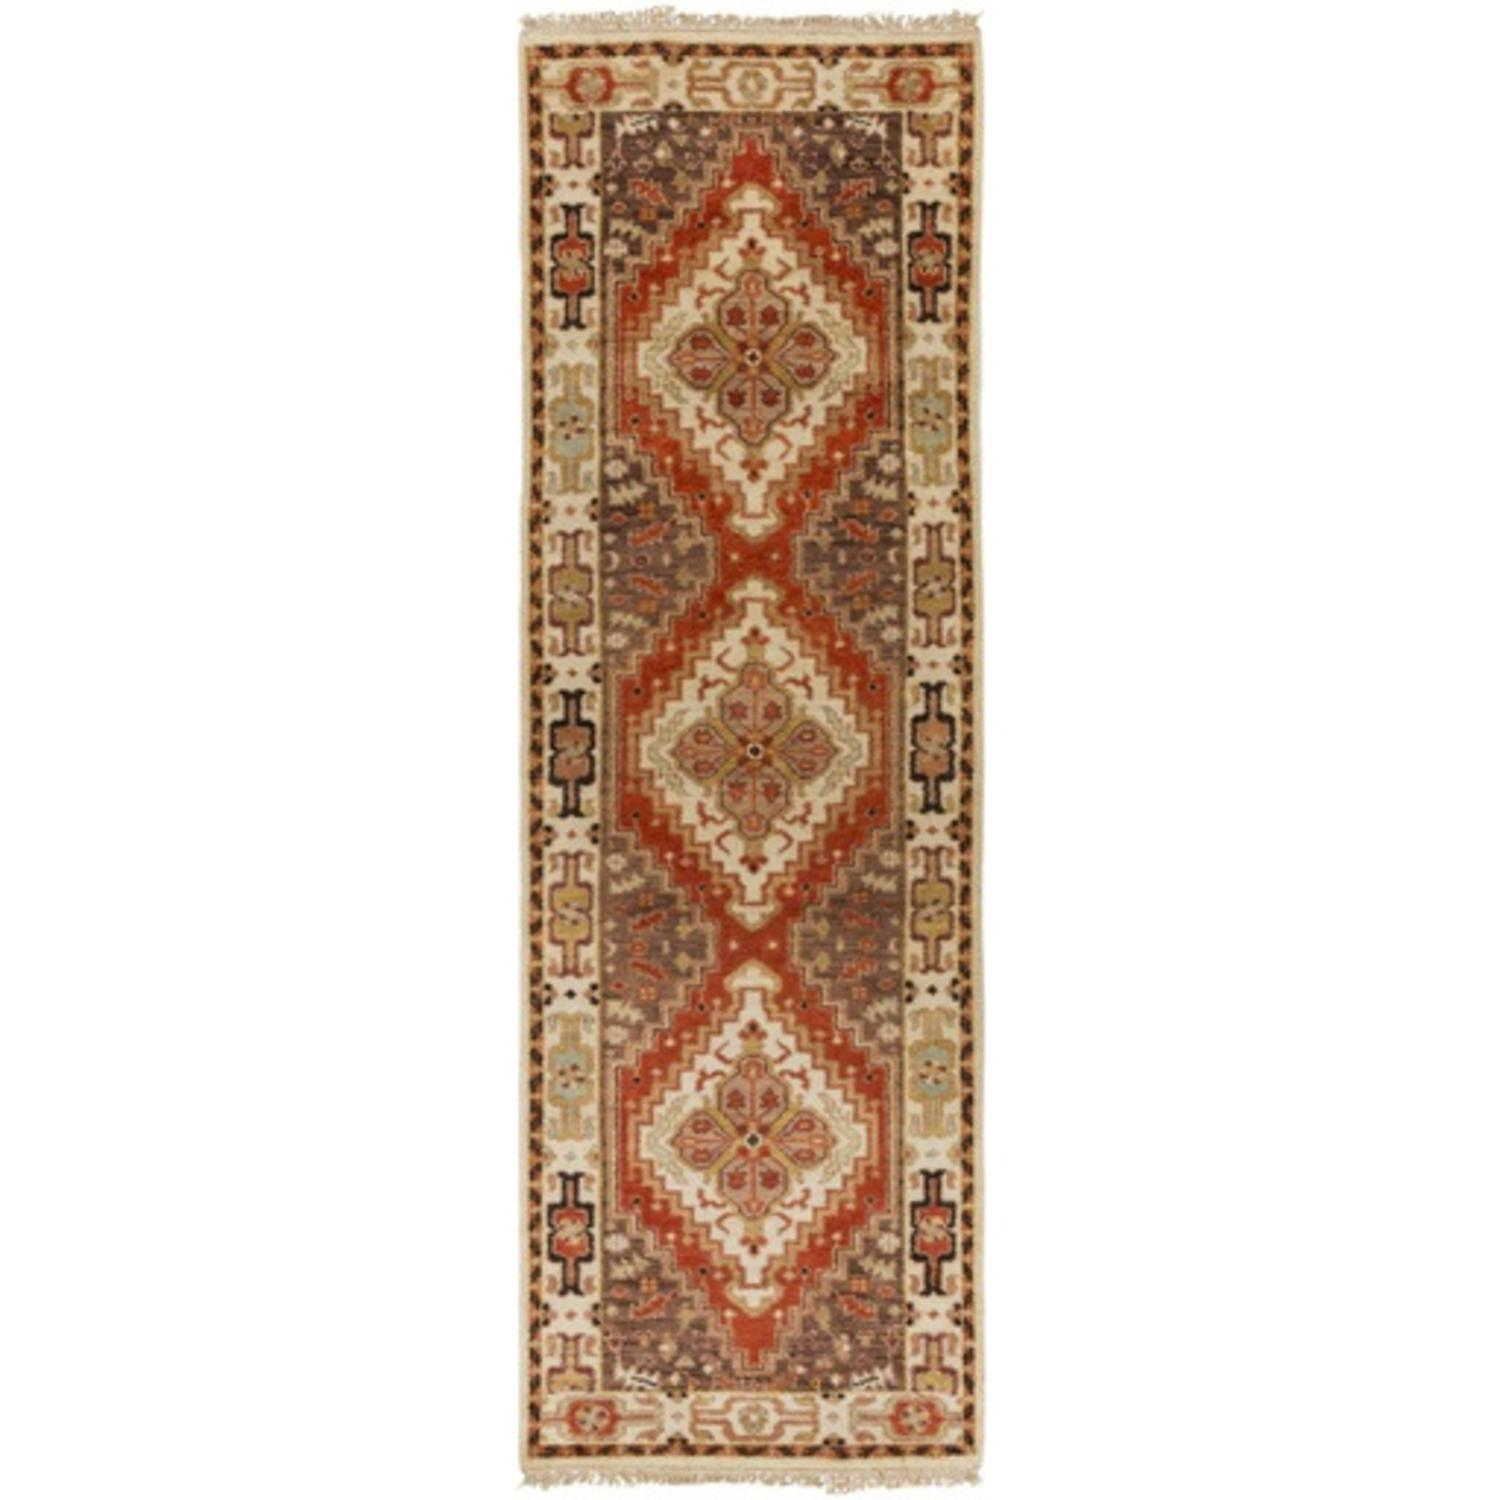 2.5' x 8' Fire Pit Cinnamon Red and Pecan Brown Wool Area Throw Rug Runner